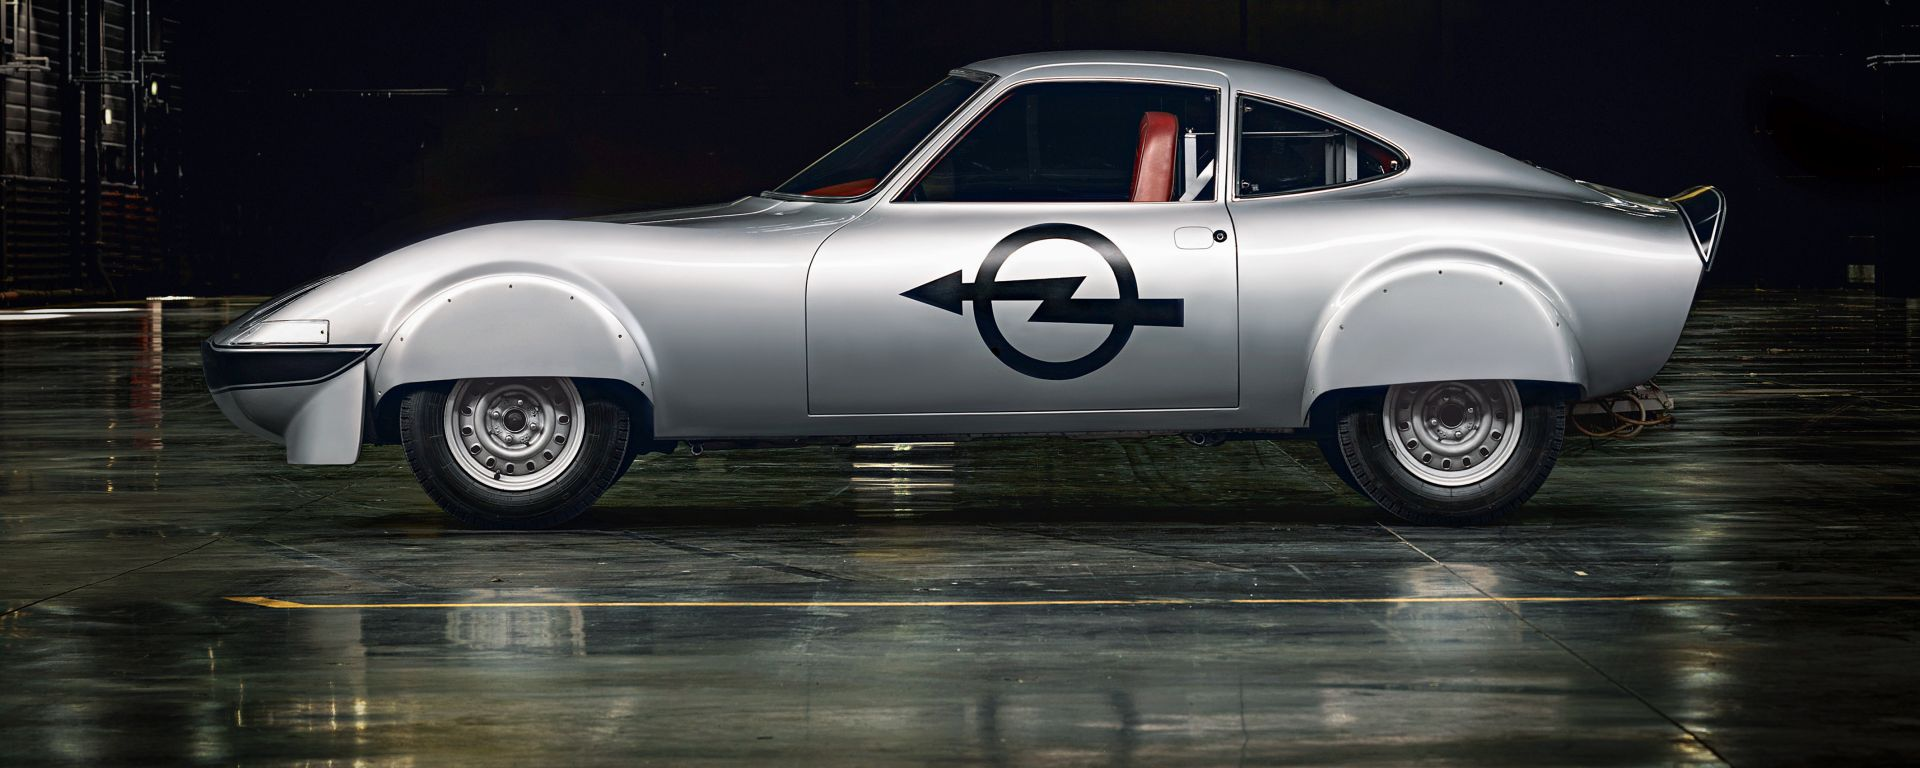 Opel Electro GT: vista laterale